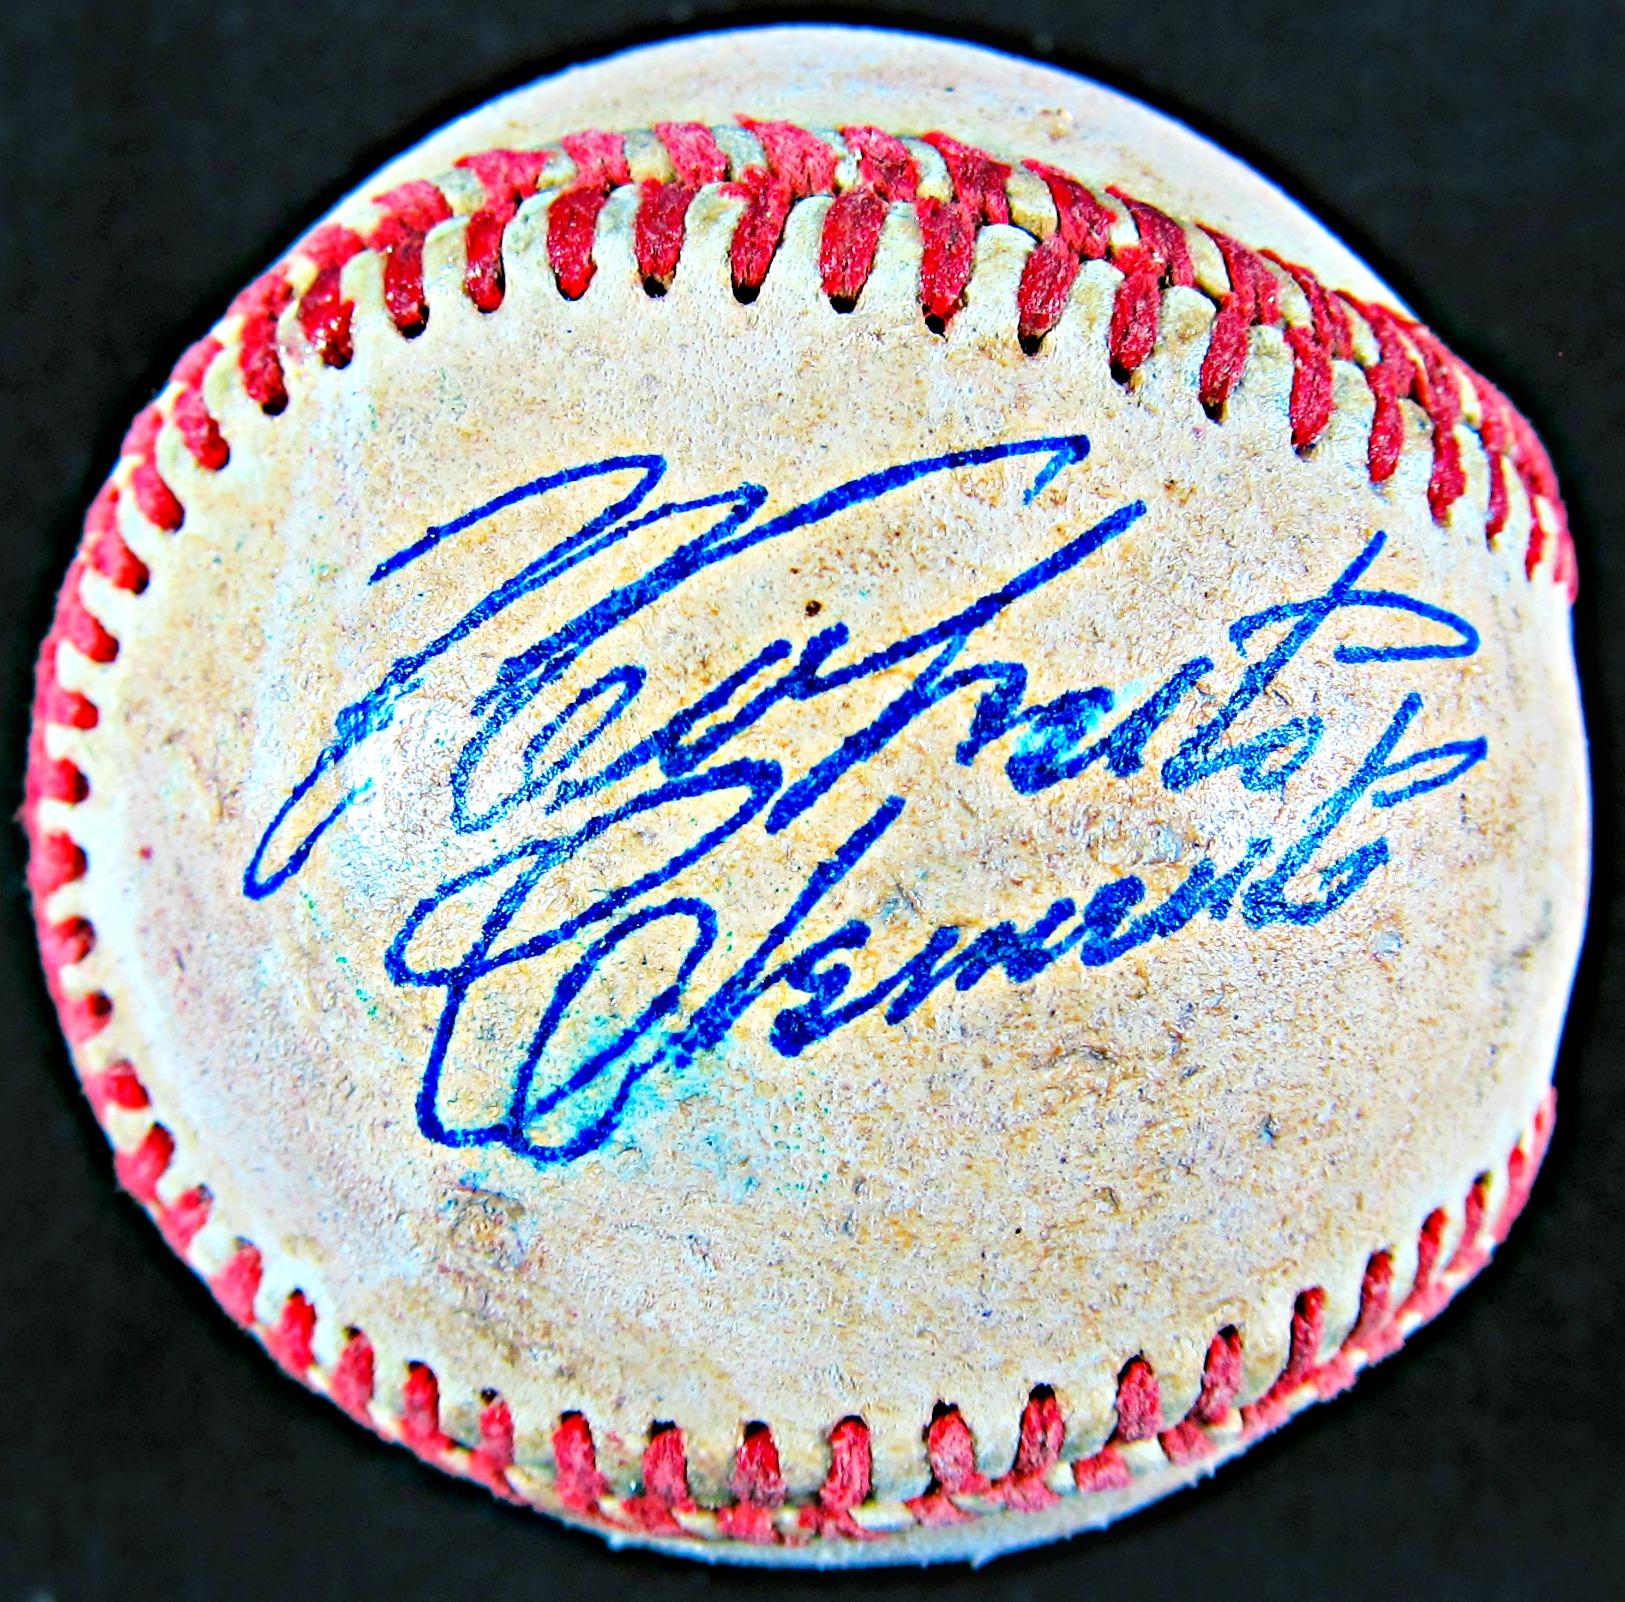 Roberto Clemente Autographed Baseball